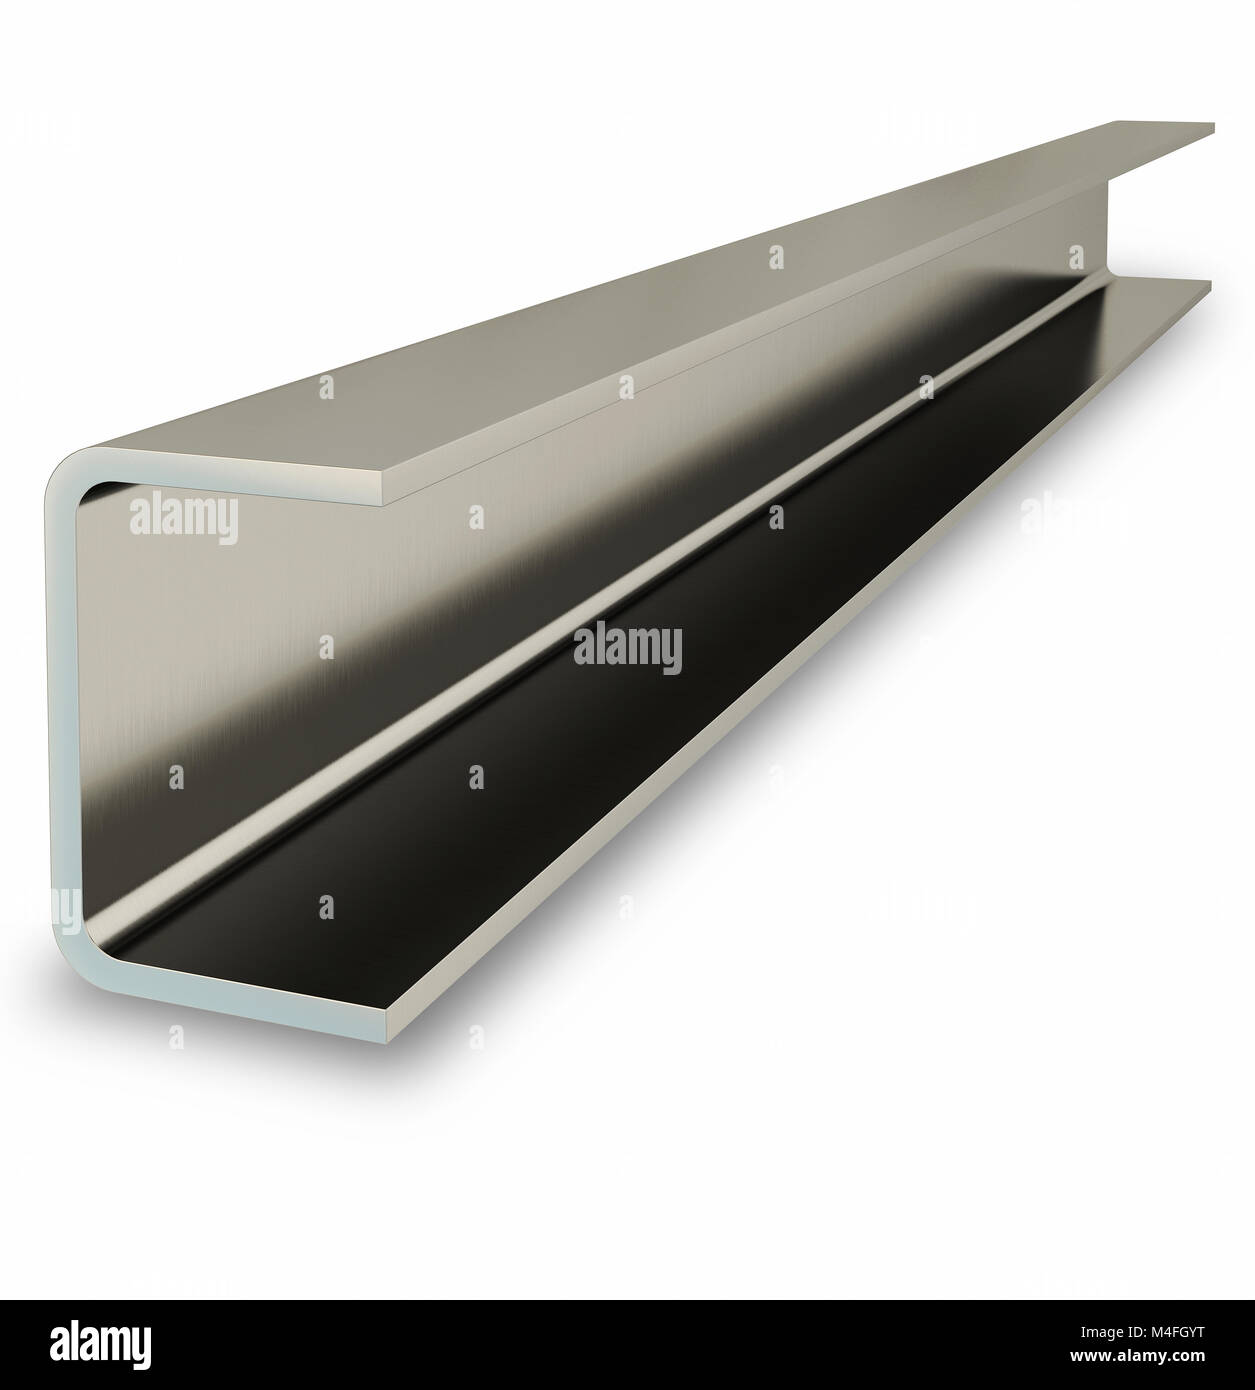 Steel channel beam isolated on white background. 3D rendering - Stock Image